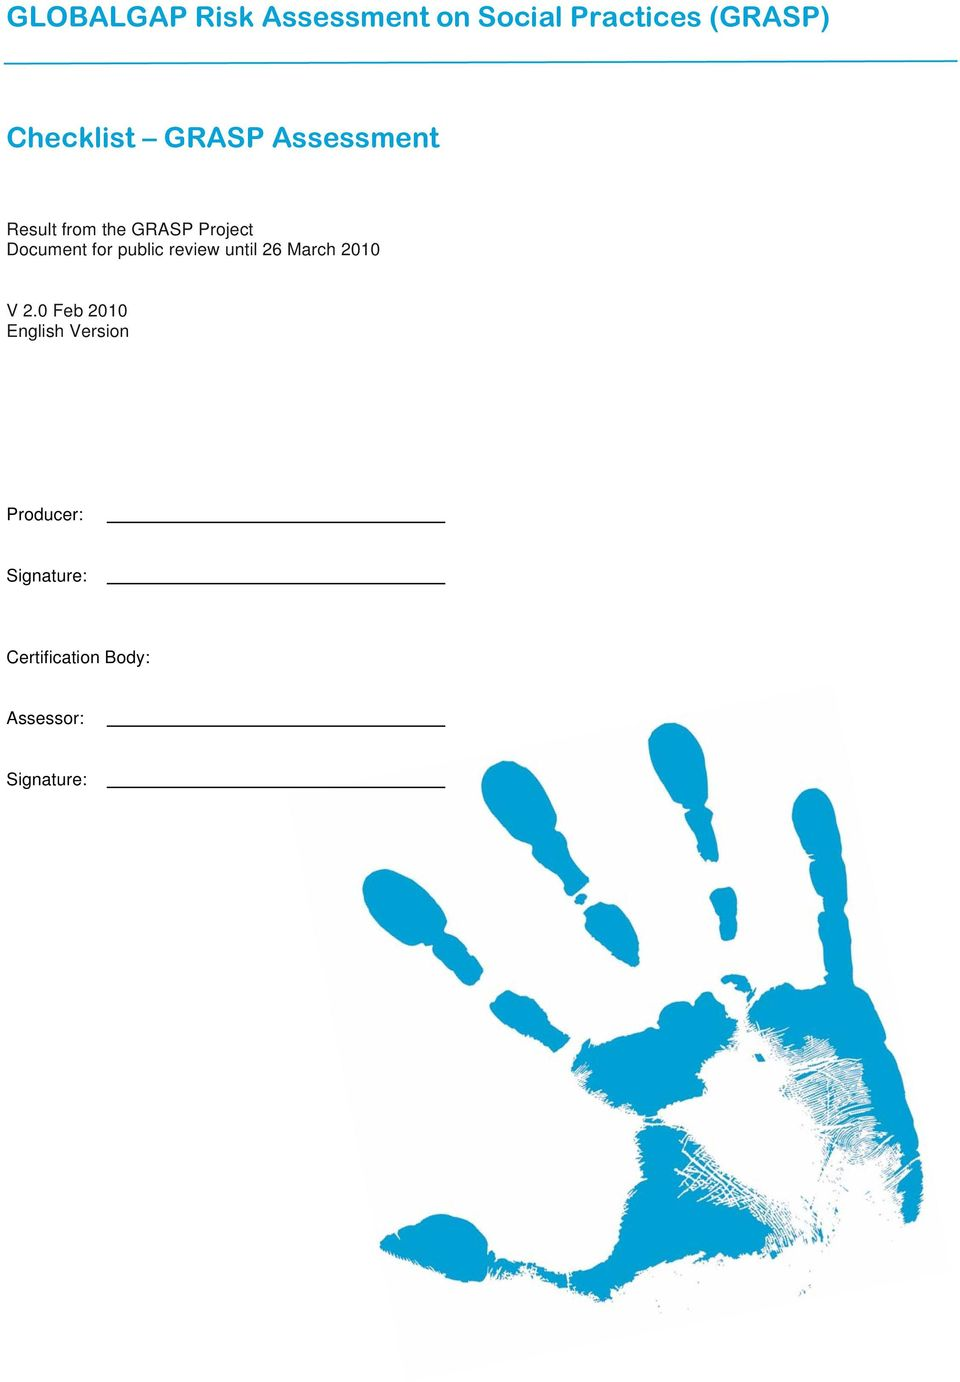 Document for public review until 26 March 2010 V 2.